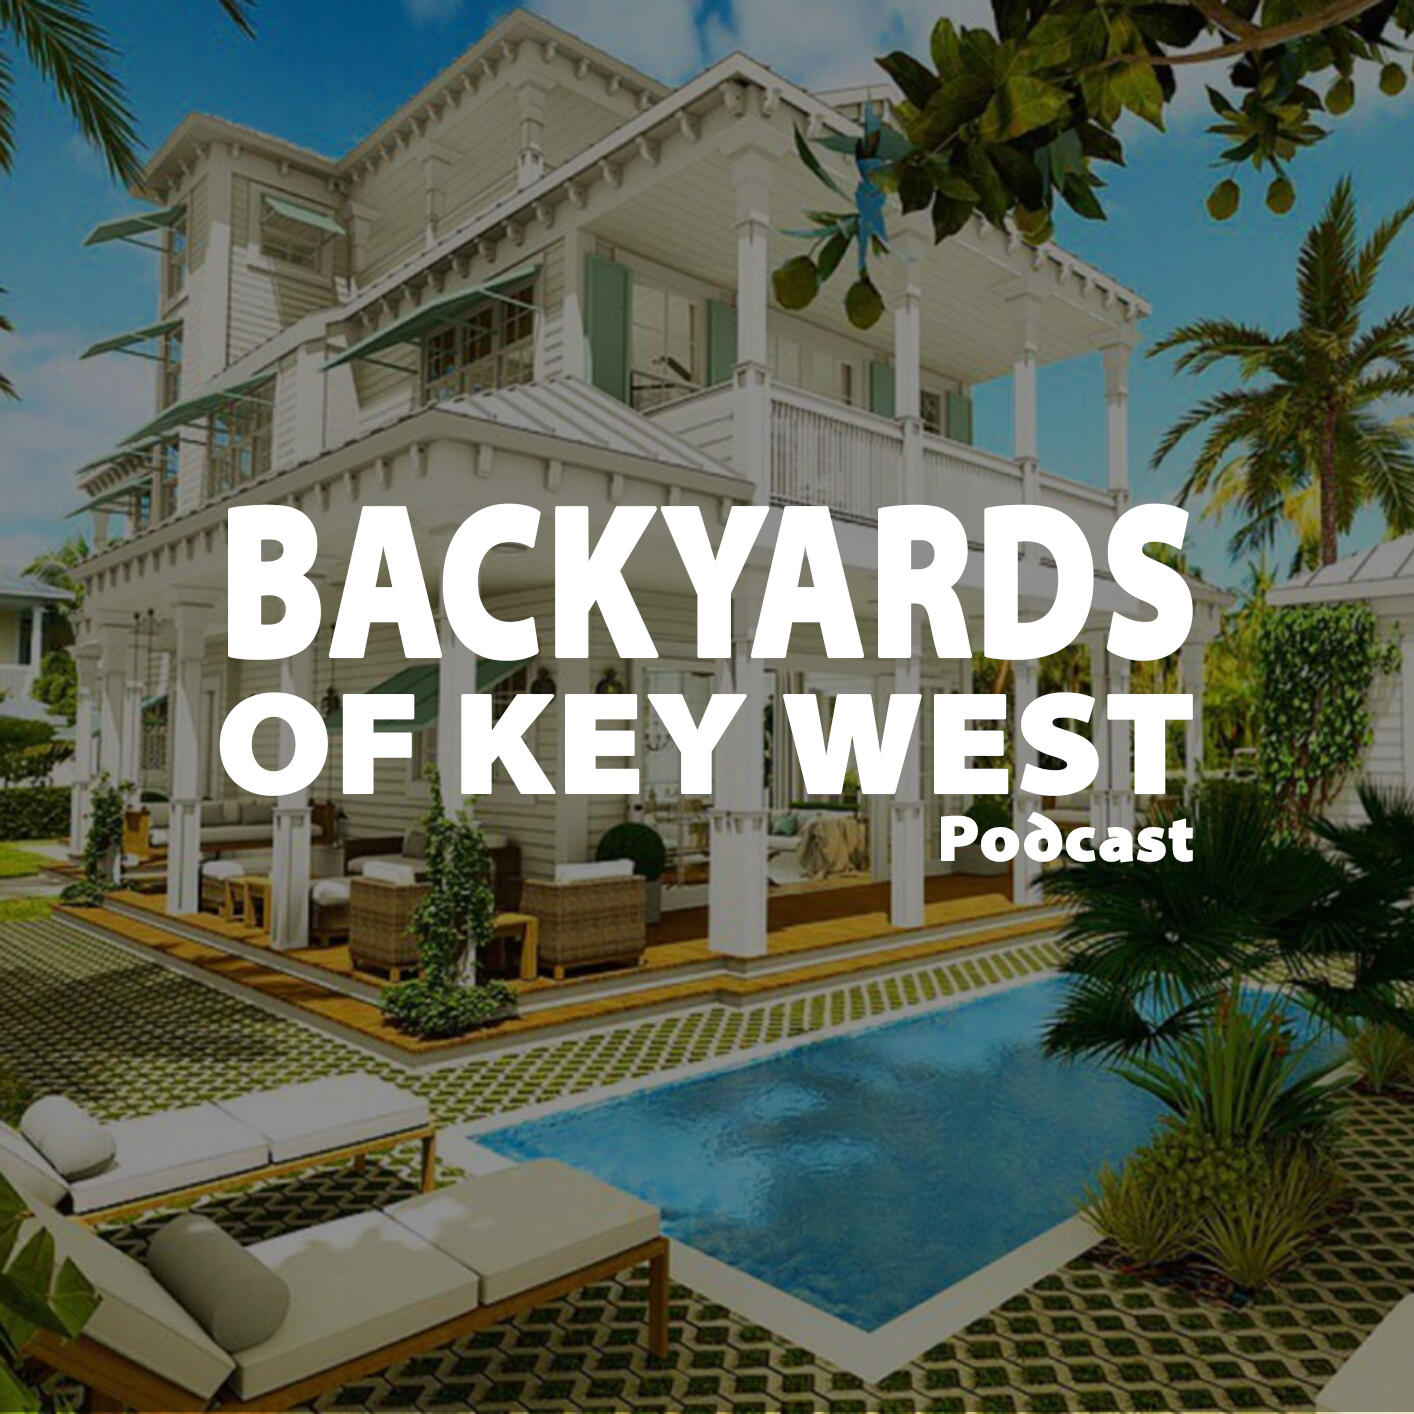 Backyards of Key West Podcast with Mark Baratto